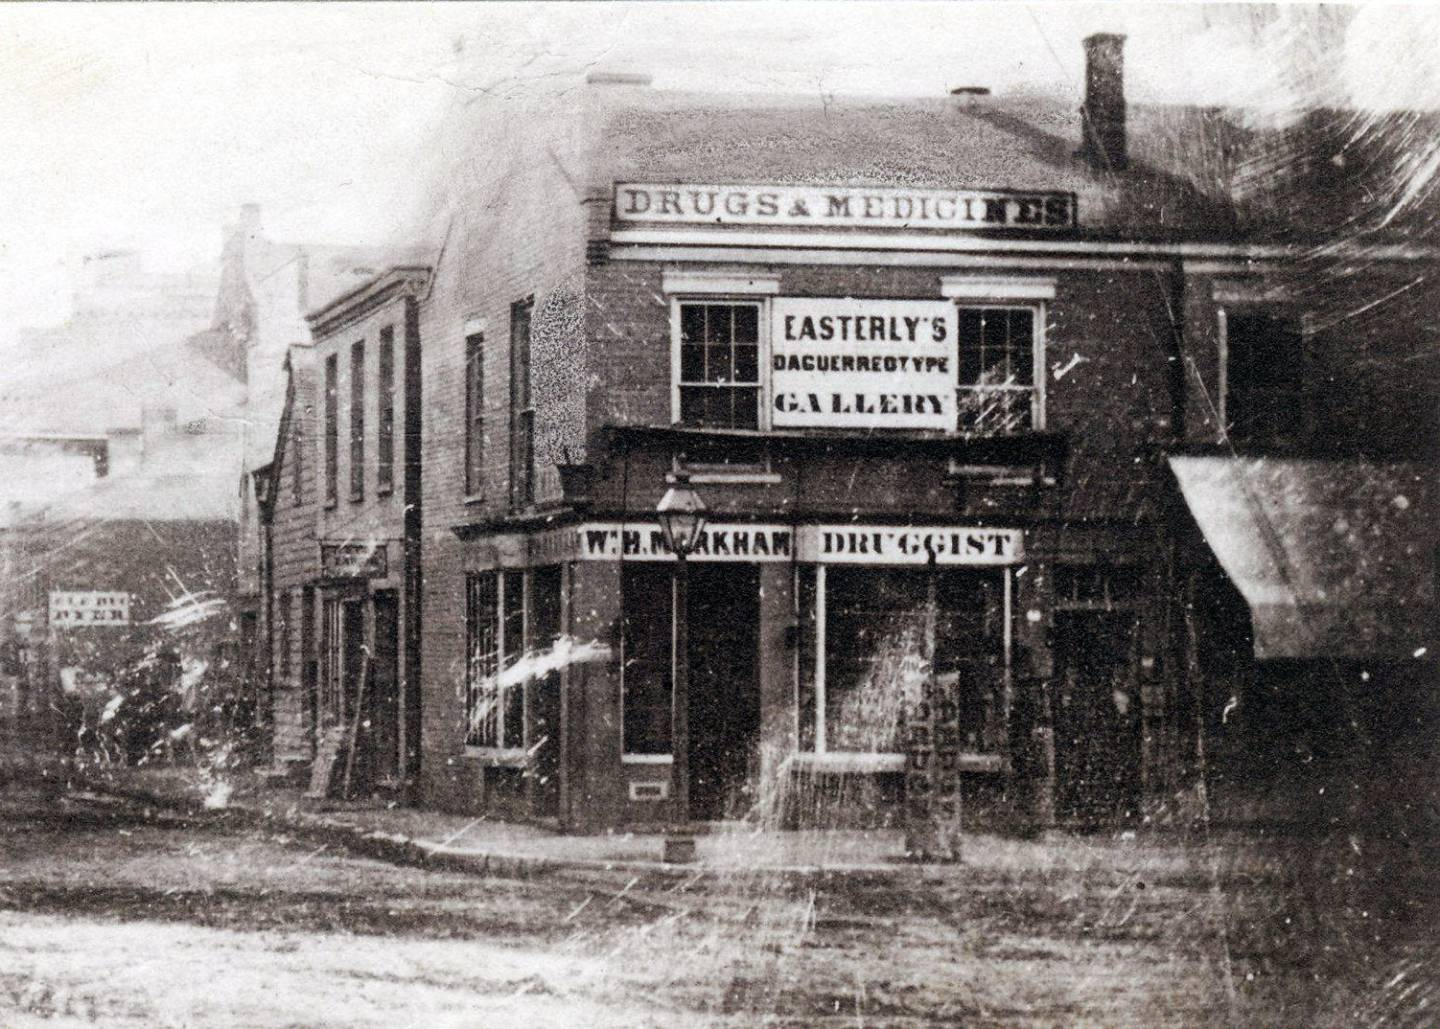 Easterly's Daguerreotype Gallery, St. Louis, 1851